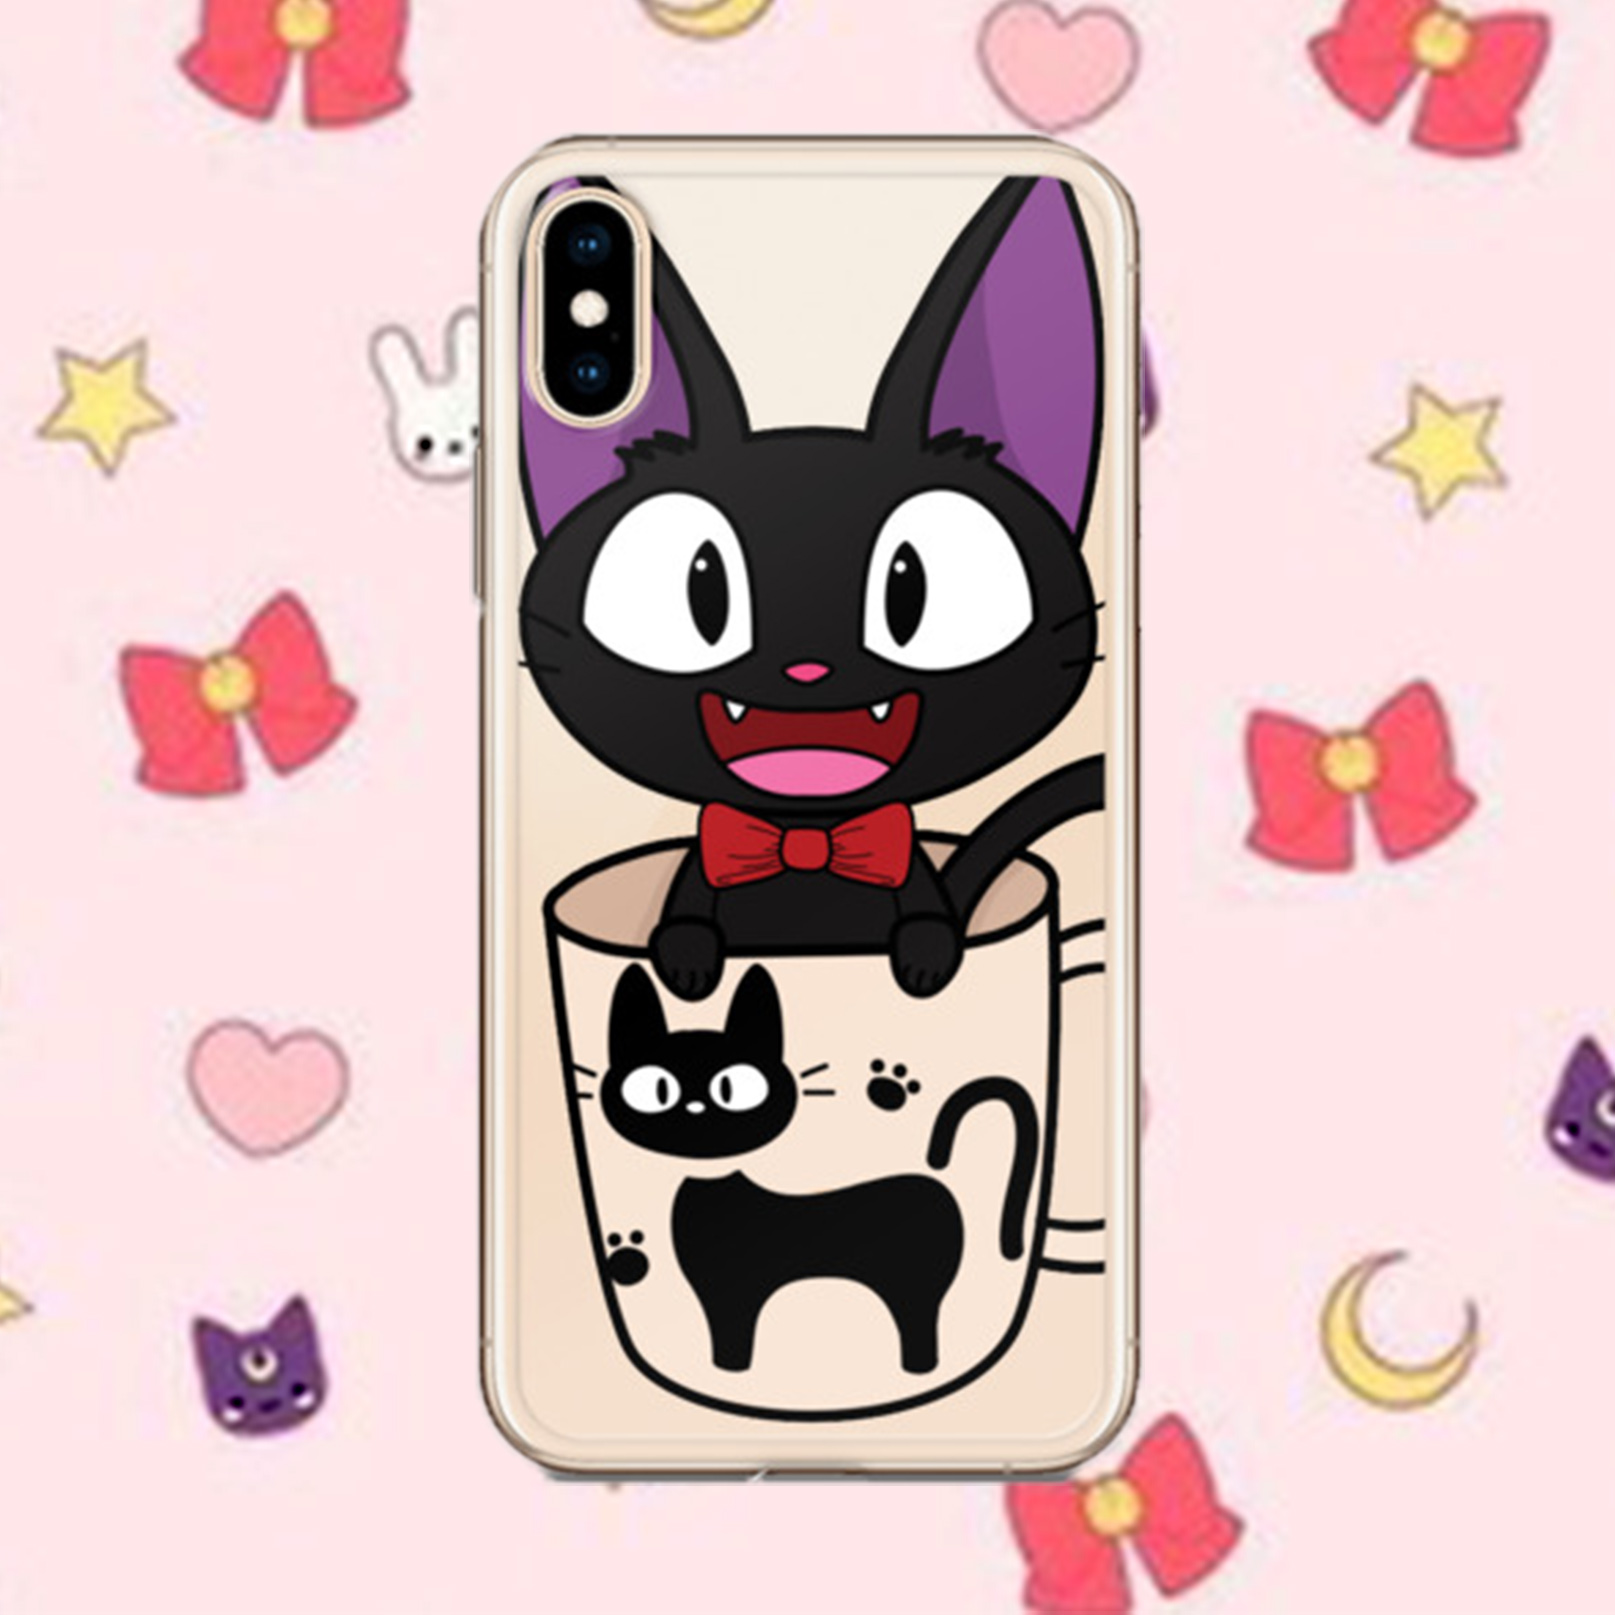 Jiji Kiki s Delivery Service Cats 2 iphone case